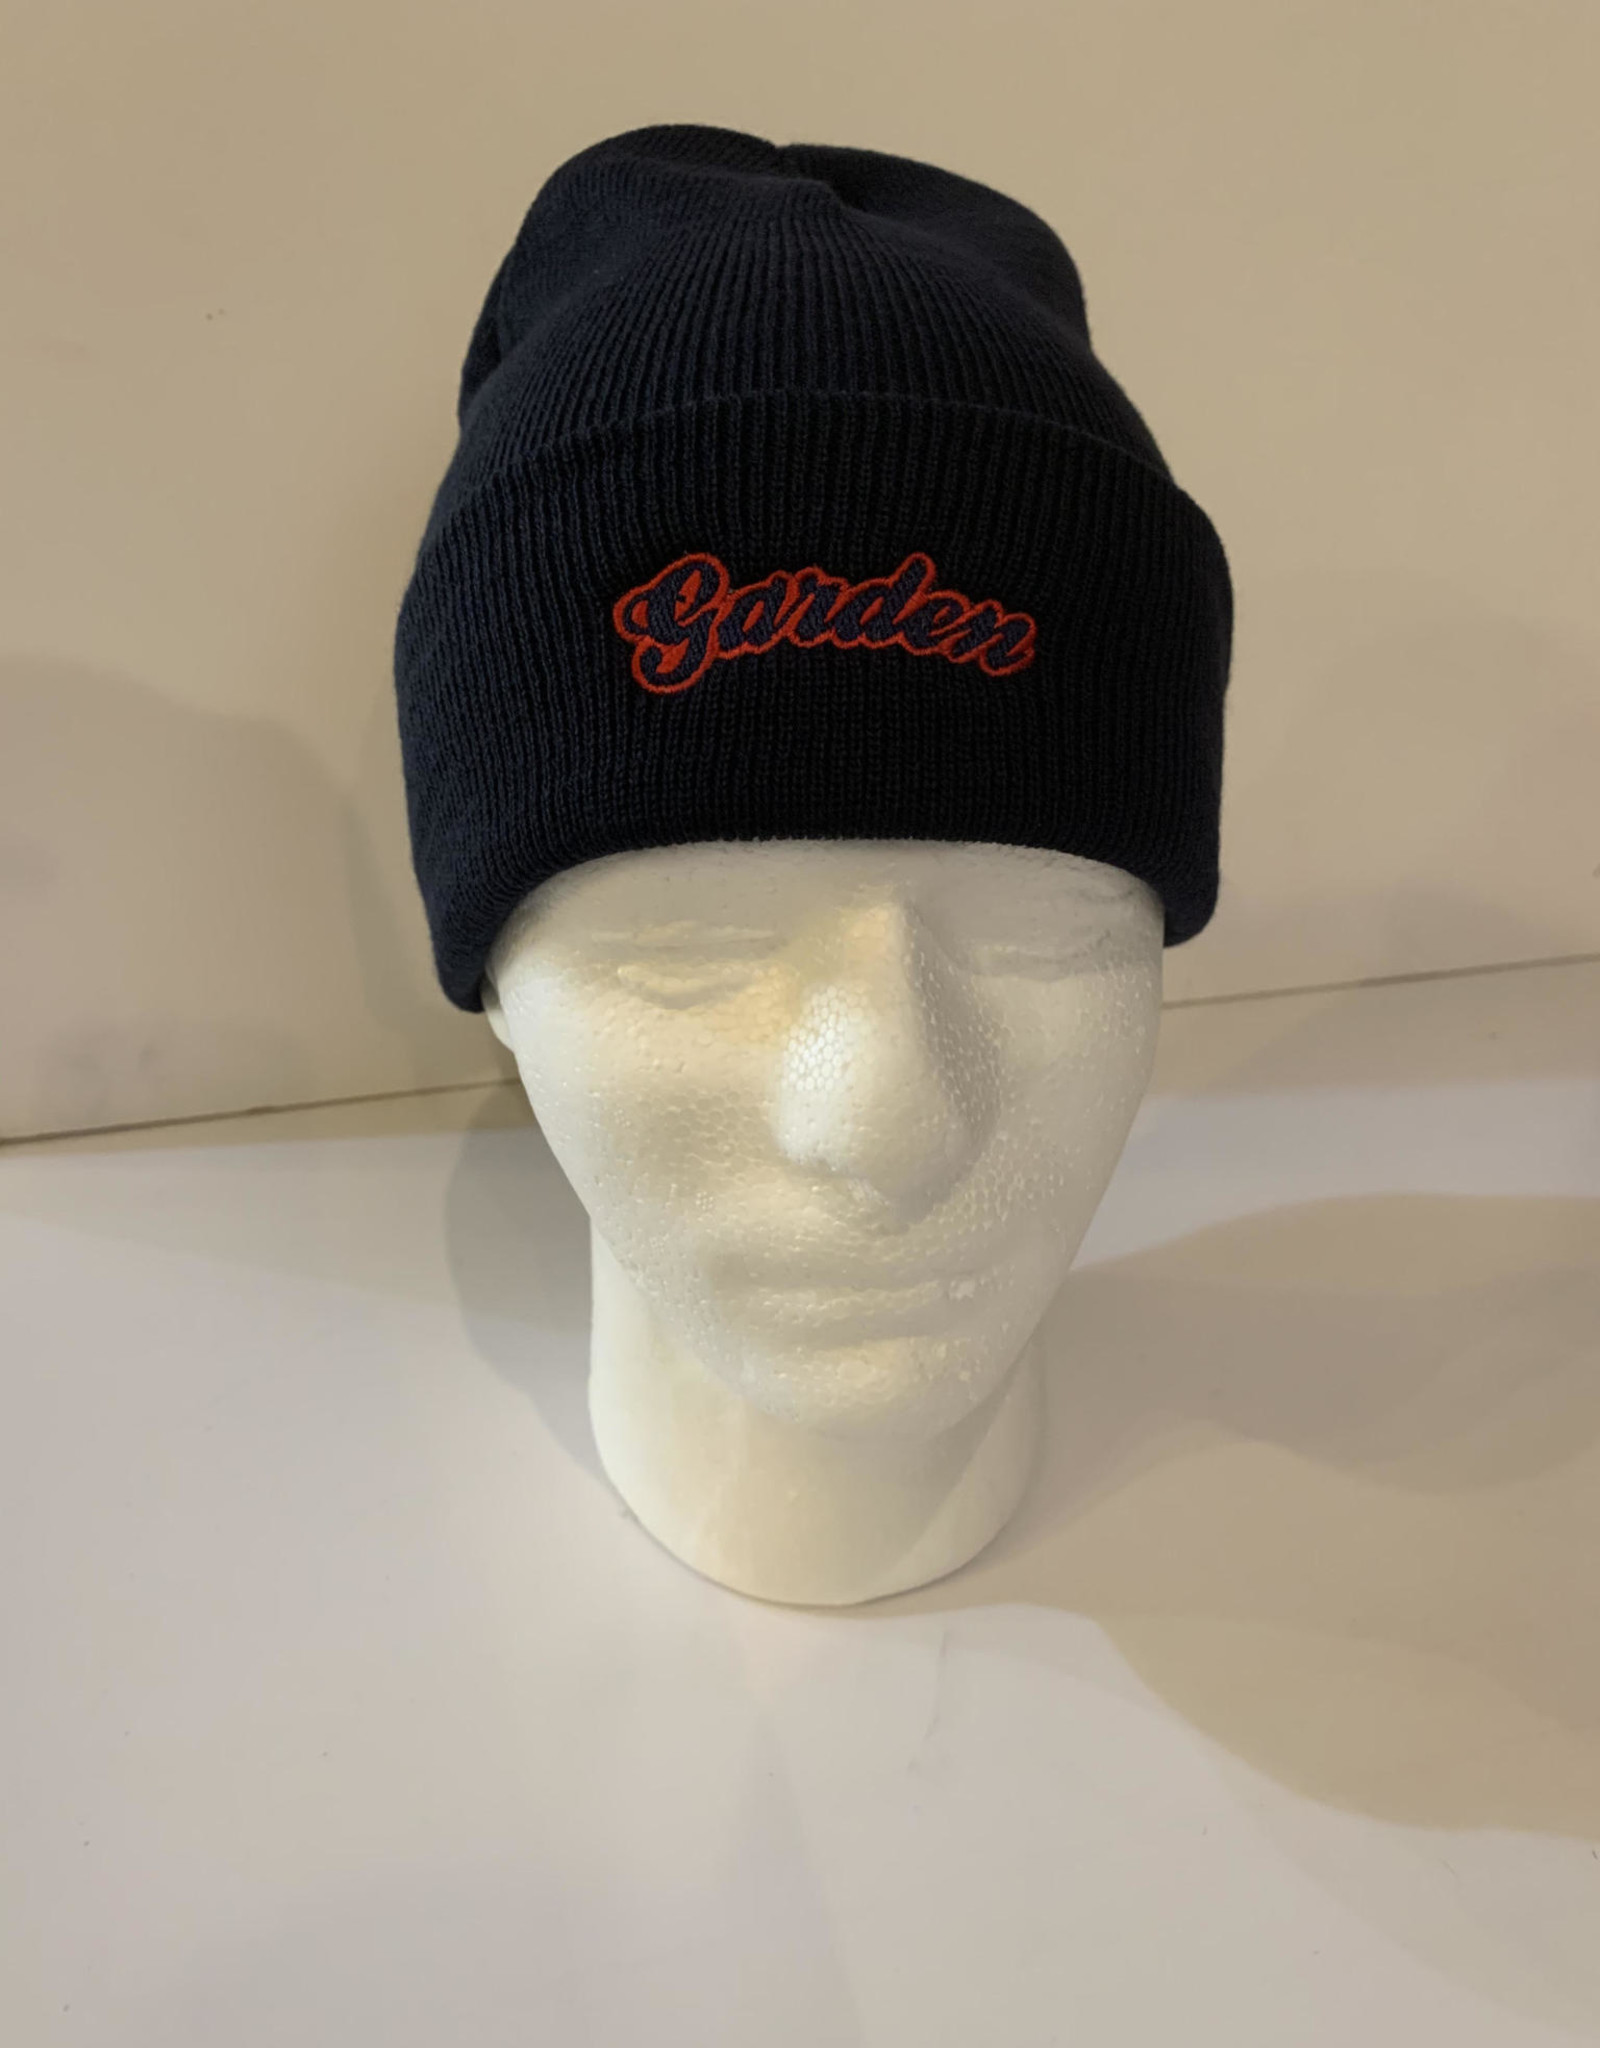 GARDEN GARDEN EMBROIDERED FOLD BEANIE NAVY W/RED